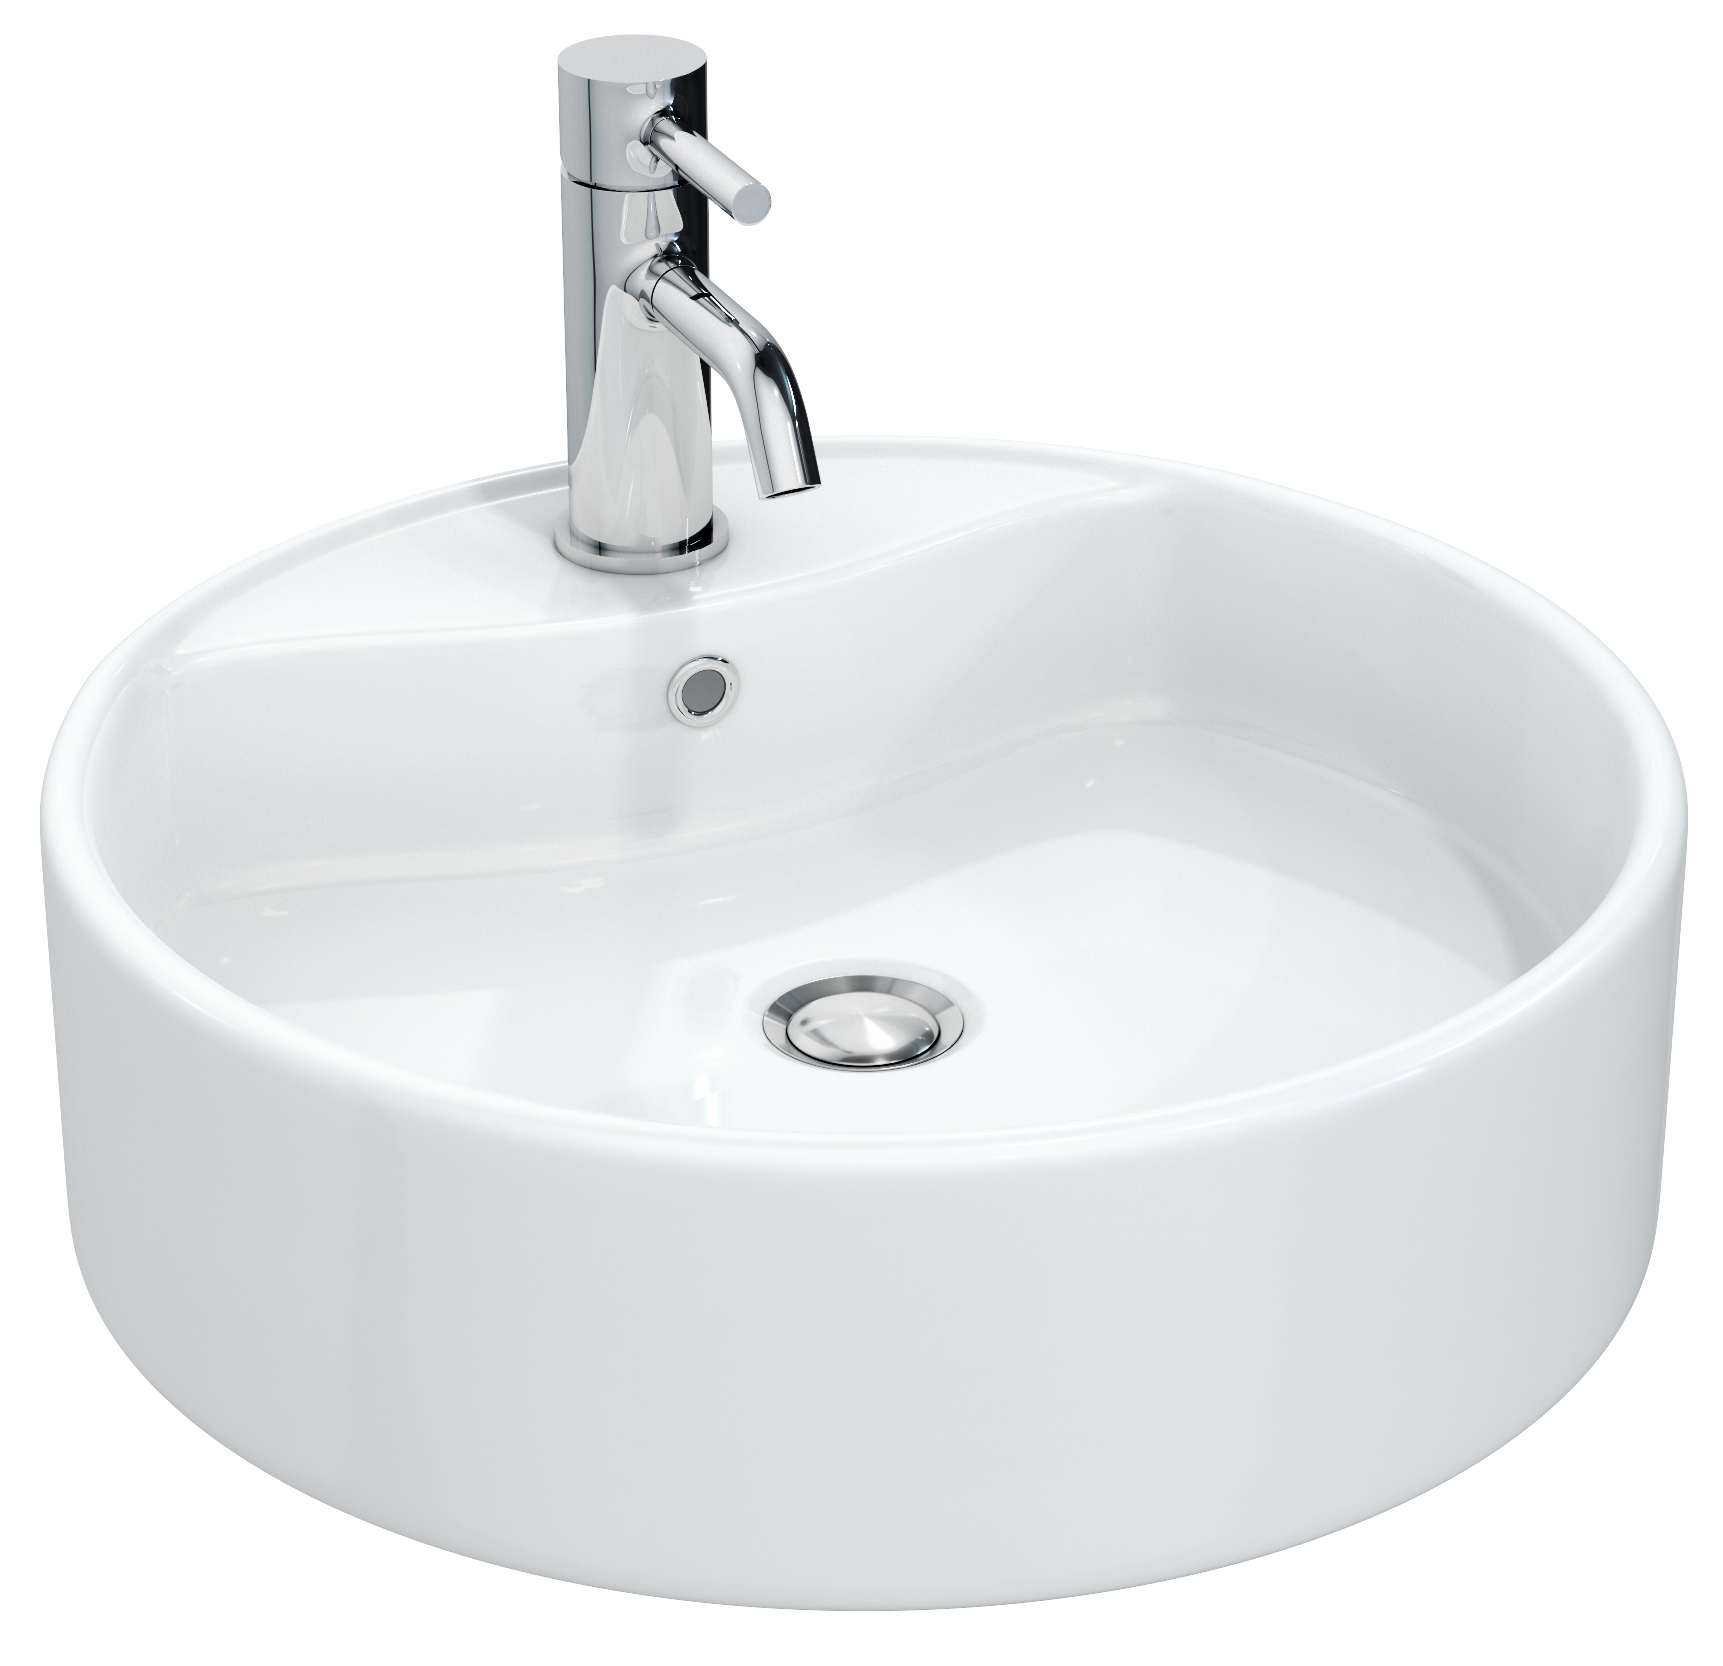 Round Counter Top: Miller 460mm Round Counter Top Ceramic Basin